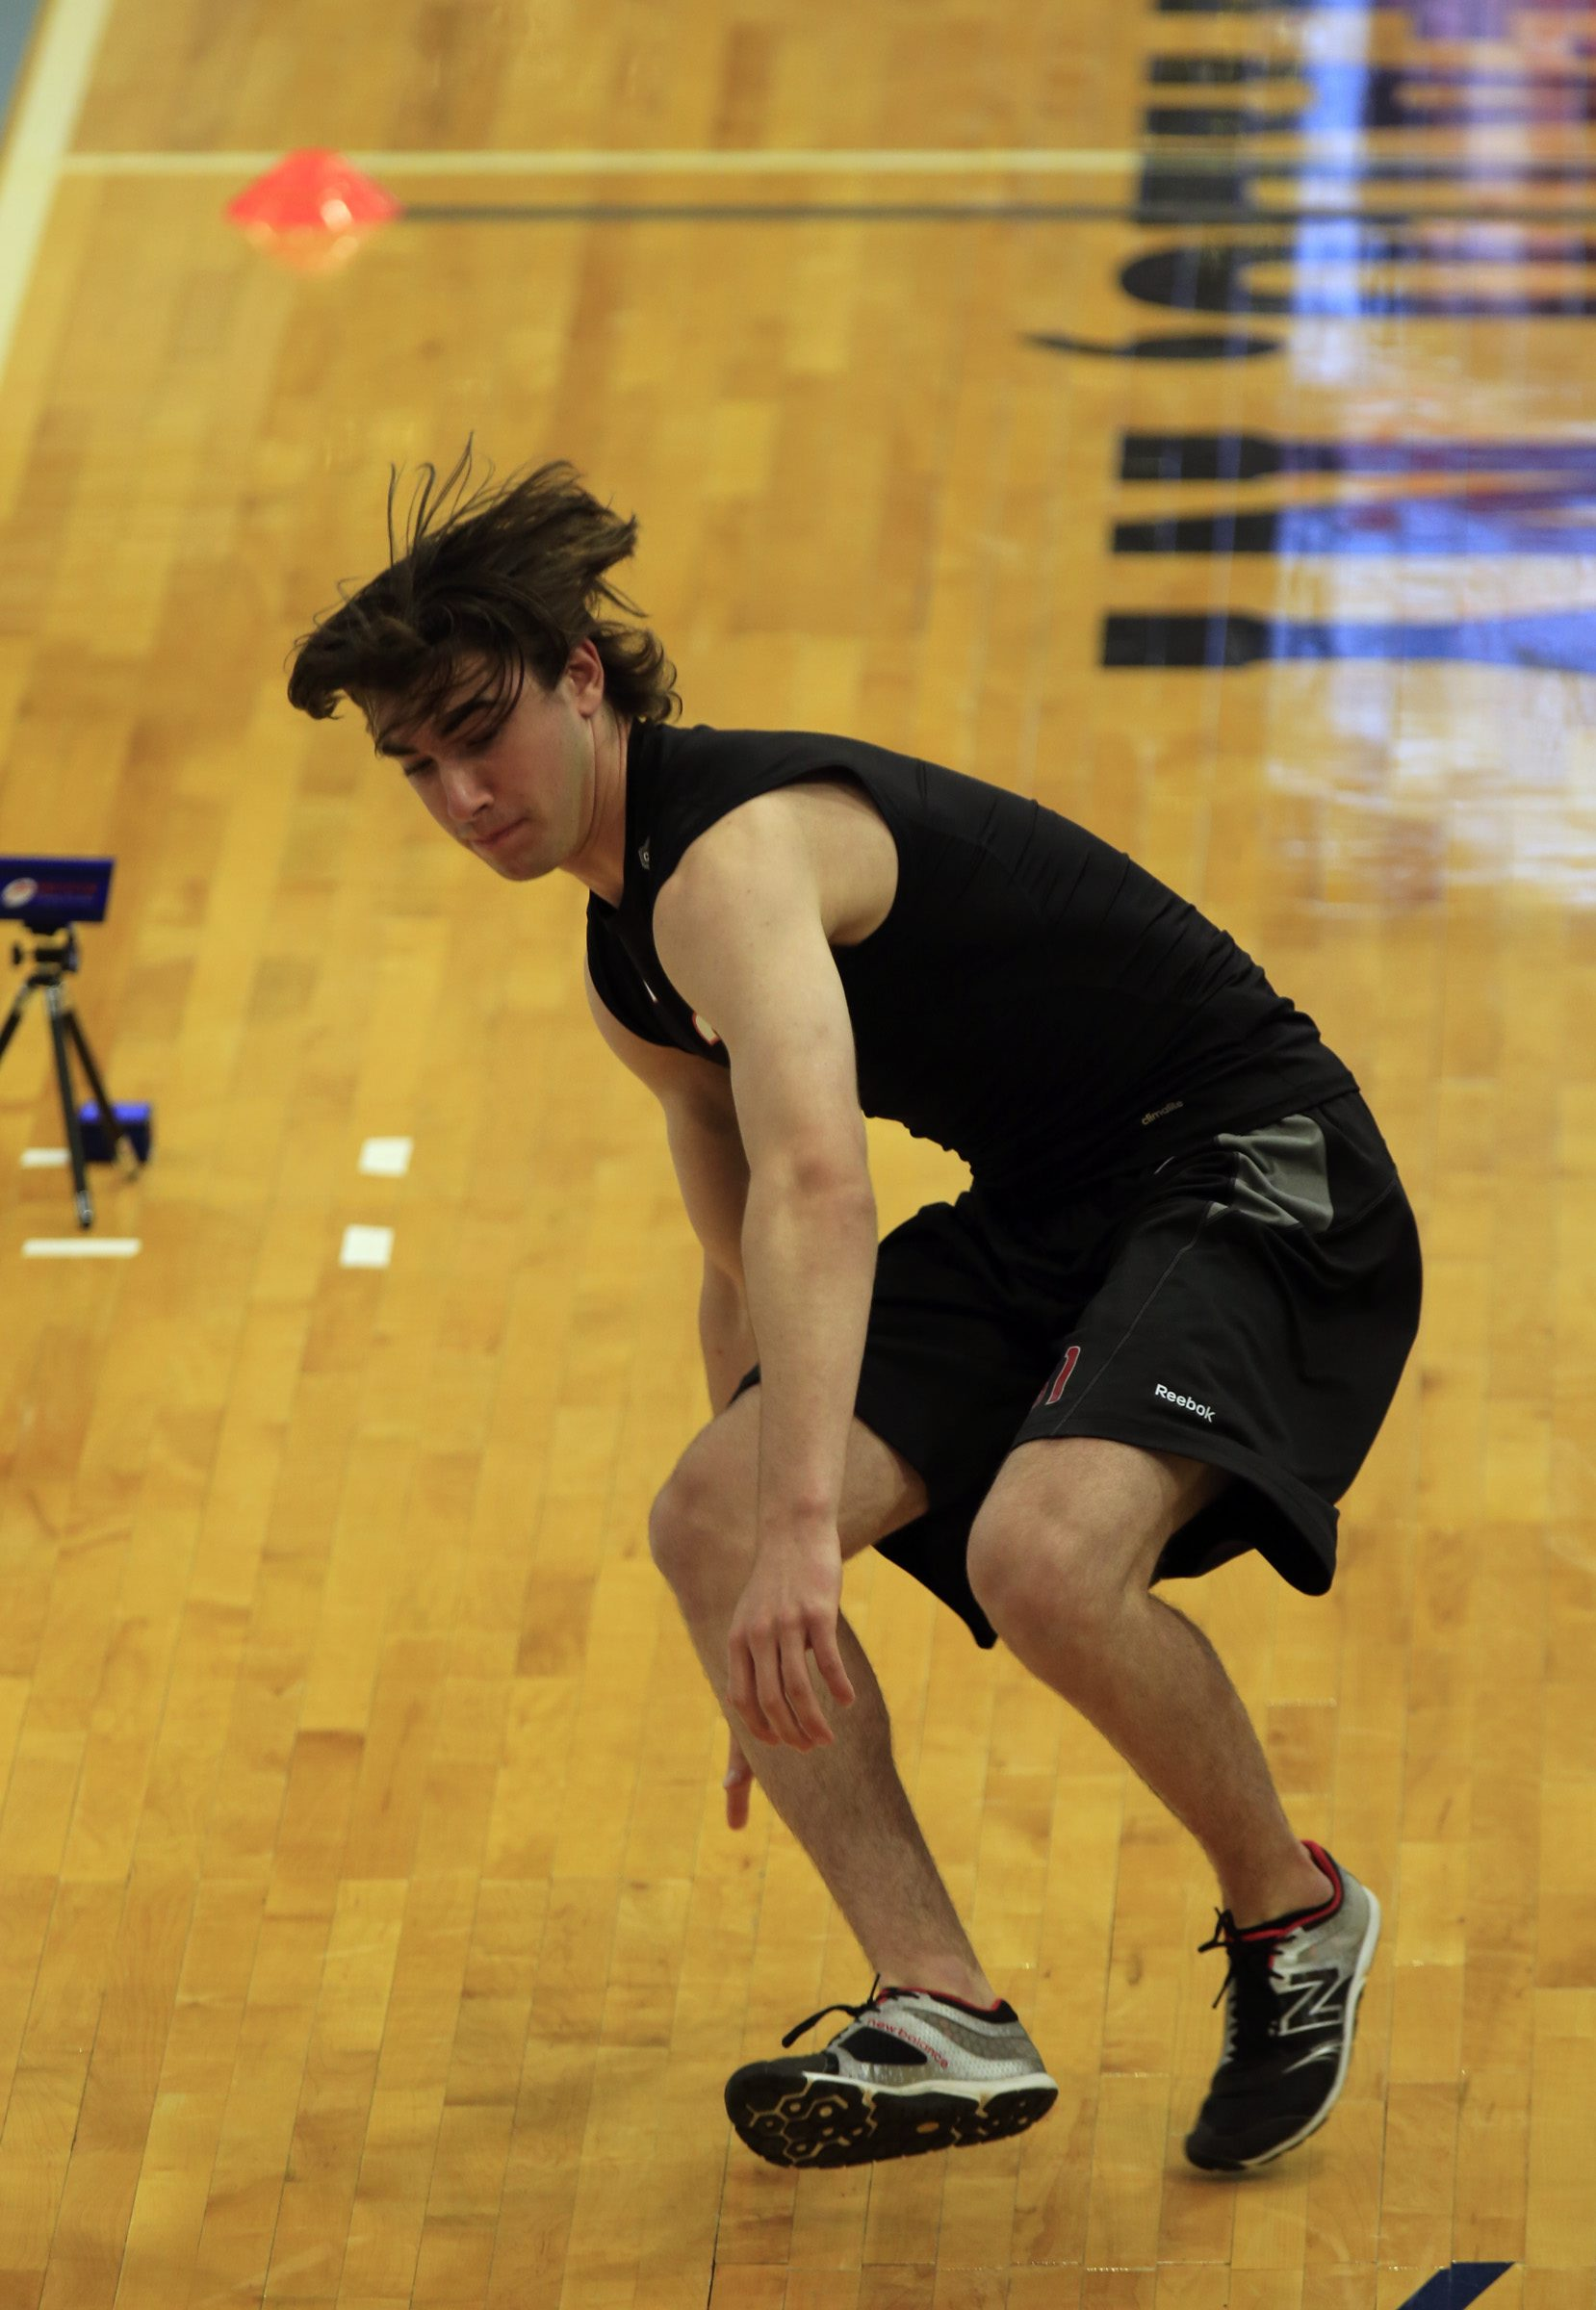 Kyle Capobianco is tested during combine drills at the NHL combine at the HarborCenter  on Saturday, June 6, 2015..(Harry Scull Jr./Buffalo News)